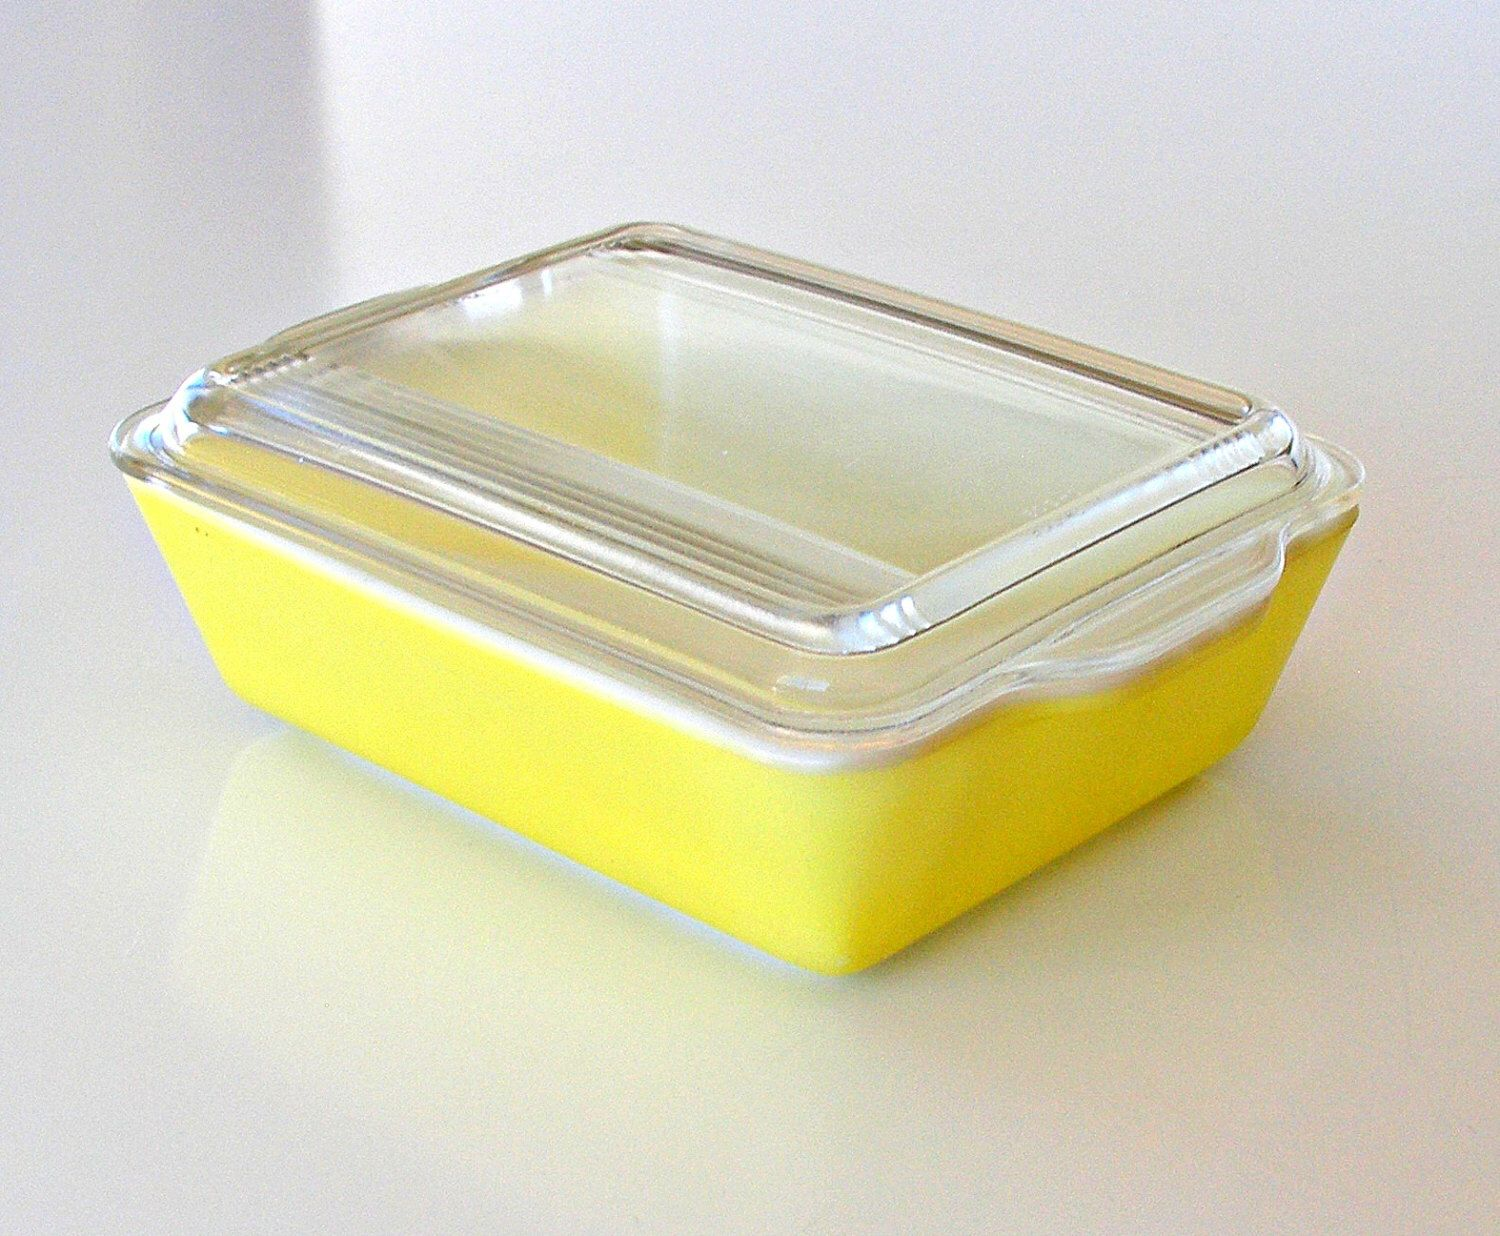 Vintage Pyrex Refrigerator Dish Primary Yellow 503 B Covered Baking ...